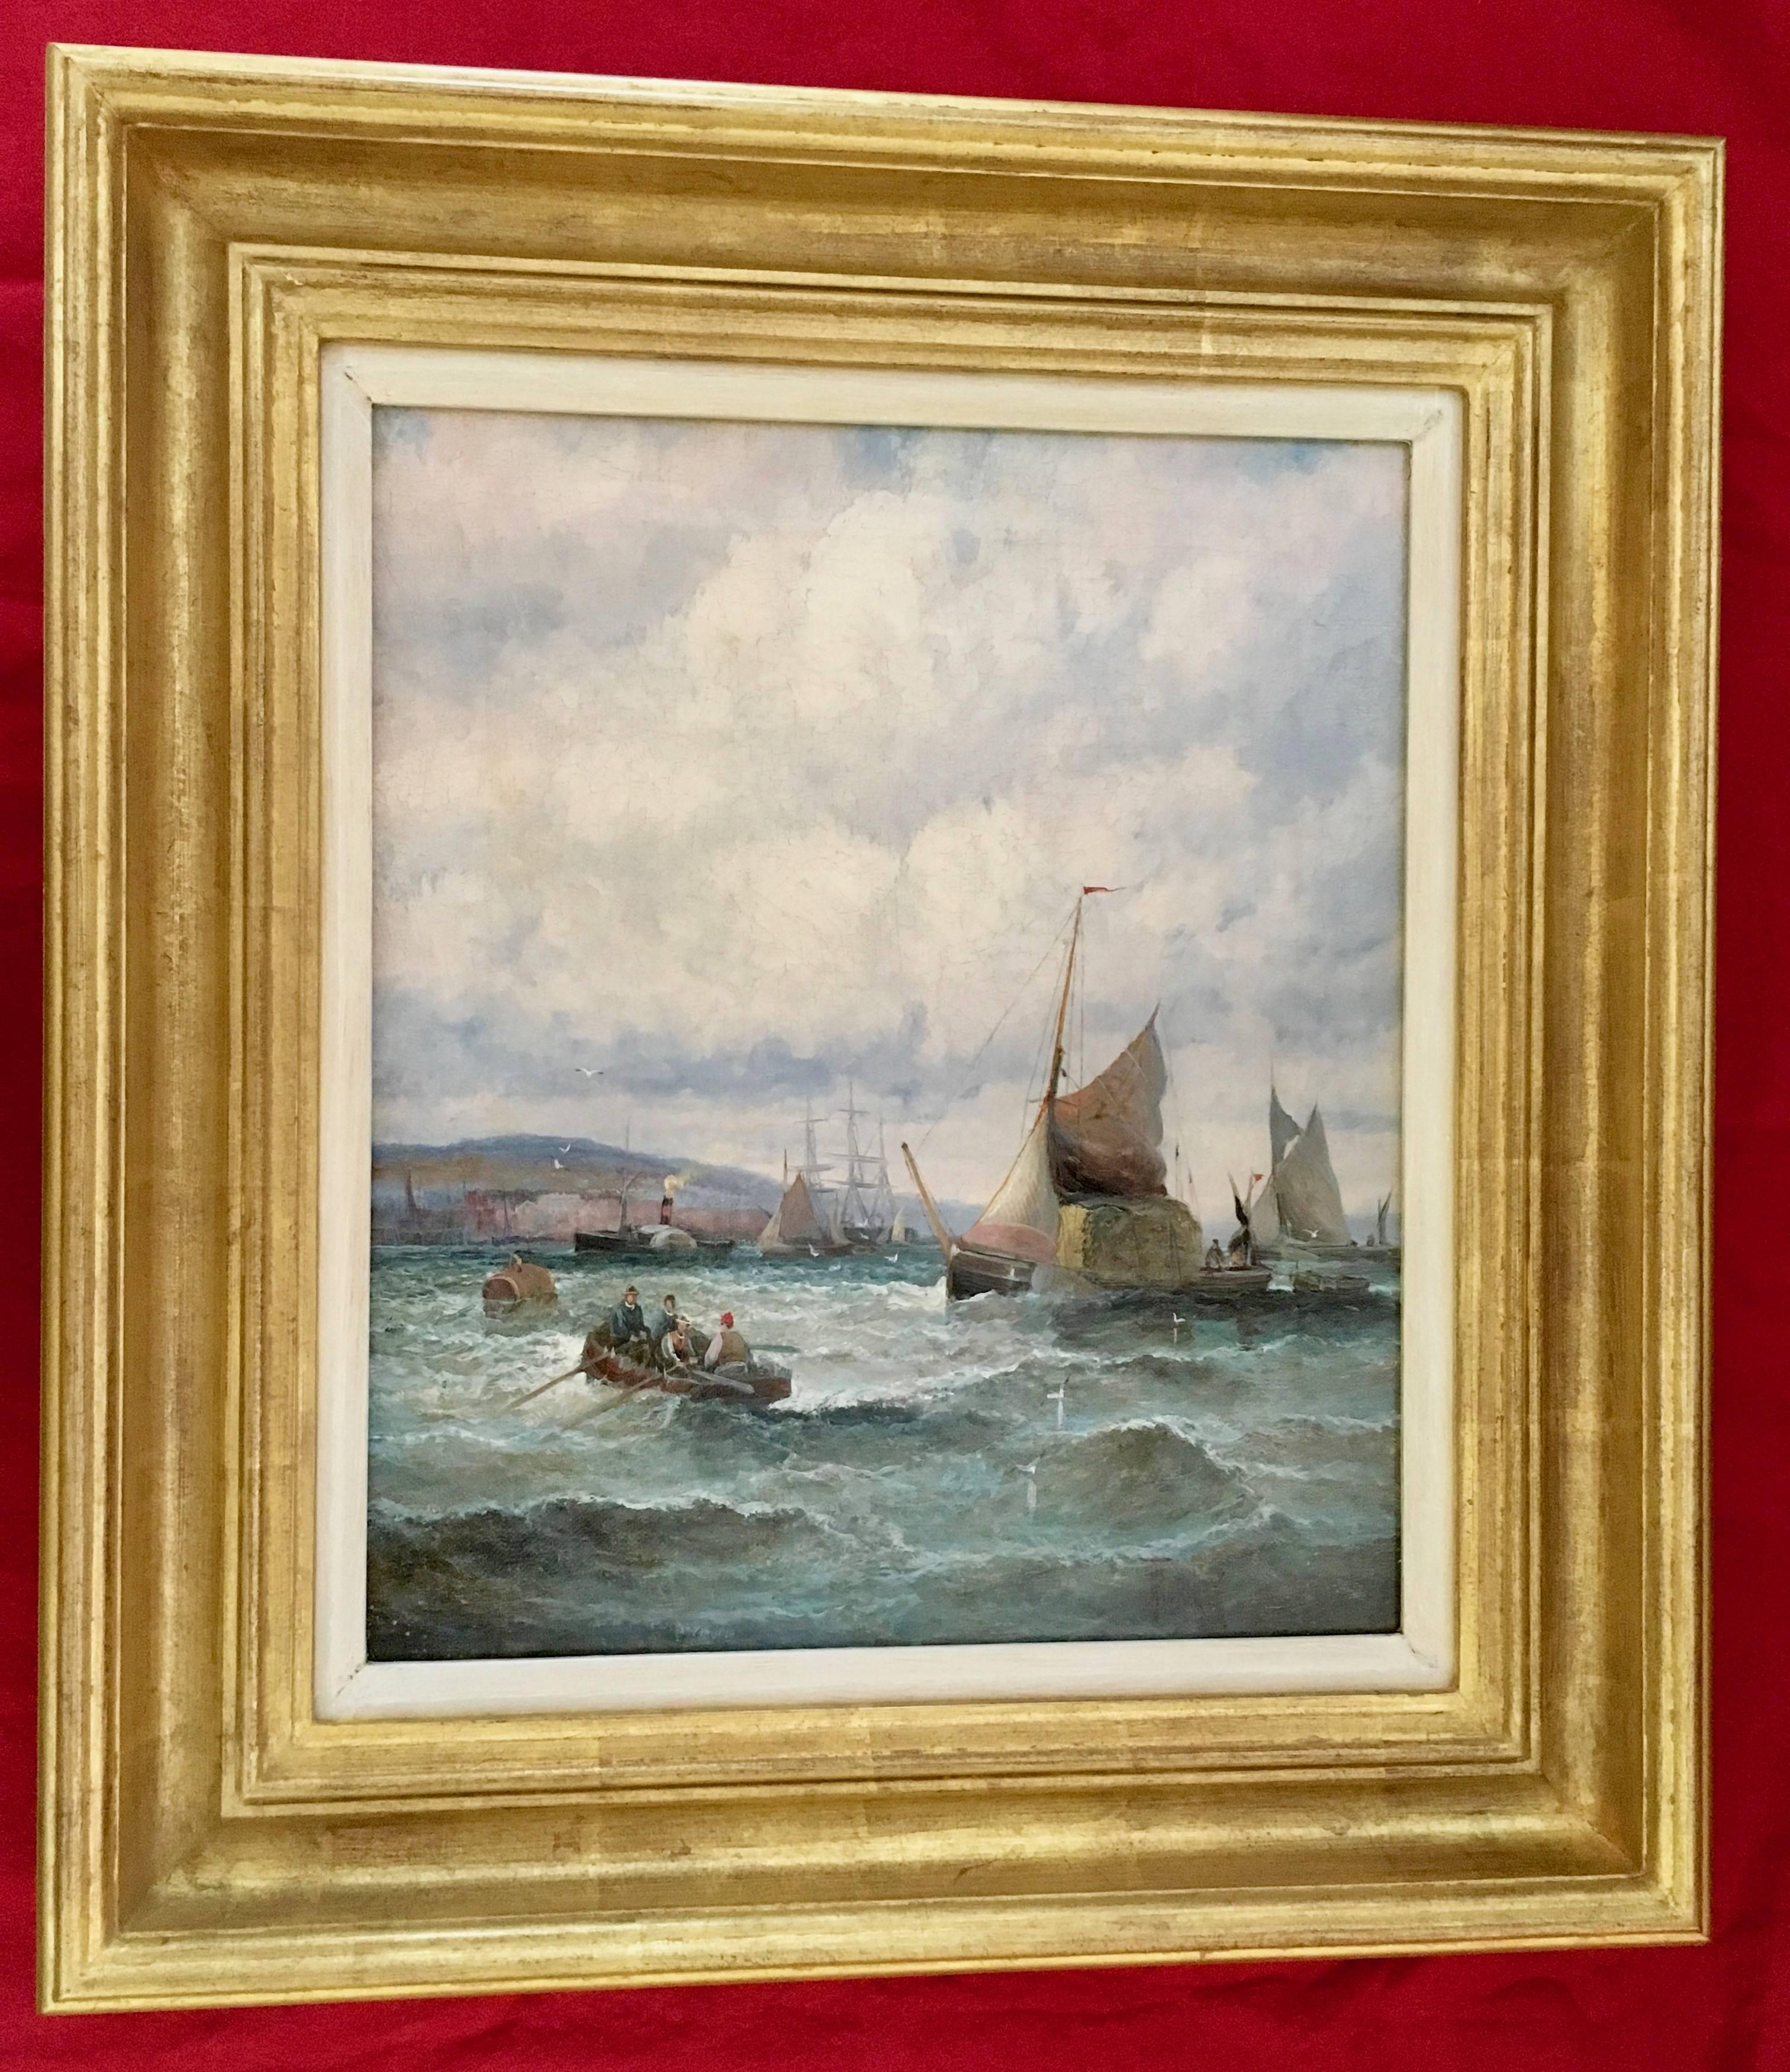 English 19th C Victorian boating scene with fishing boats in the English Channel